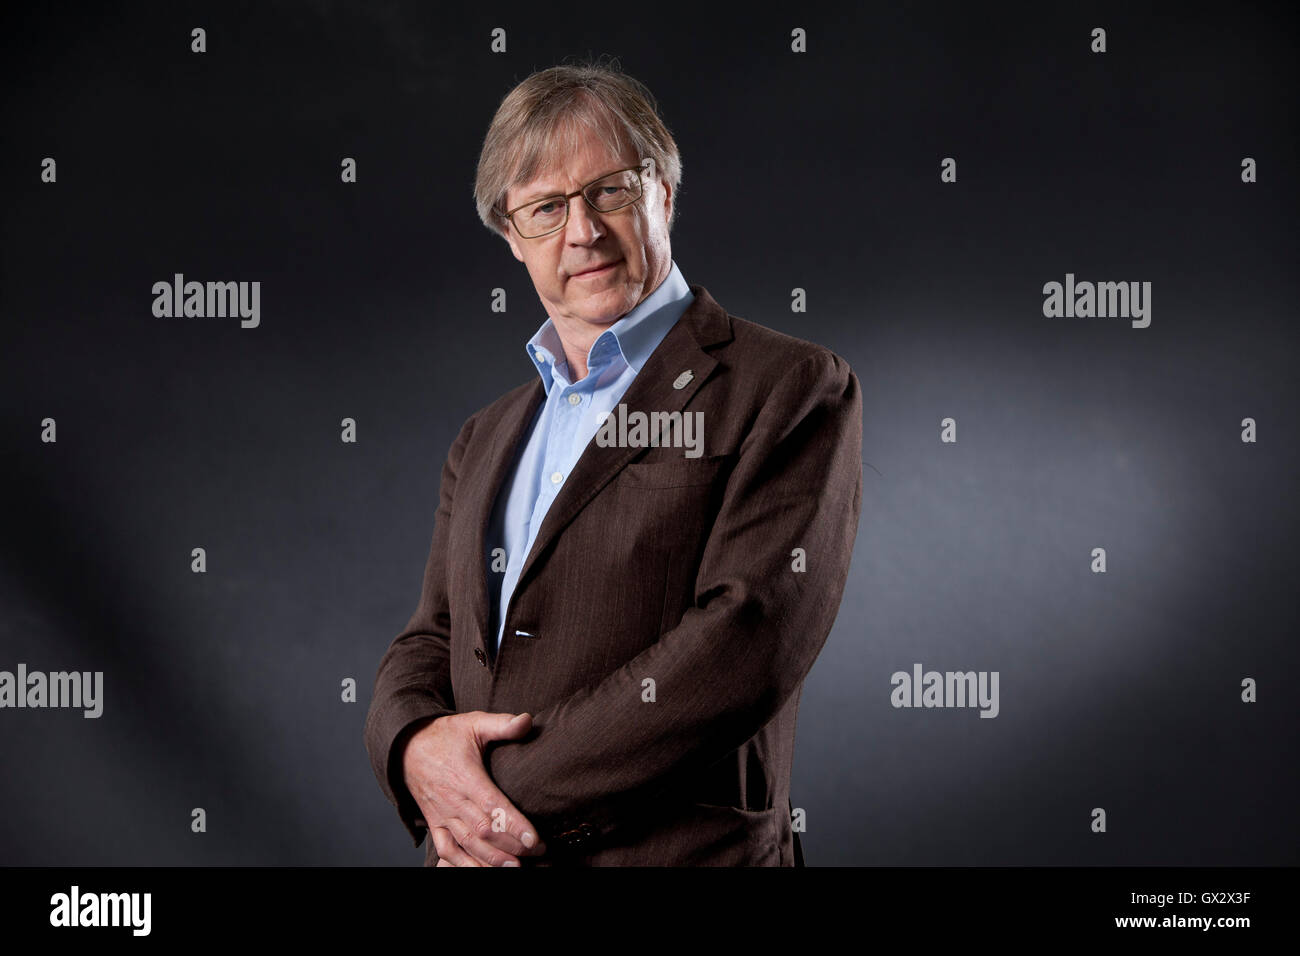 Paul Cartledge, the British ancient historian and academic, at the Edinburgh International Book Festival. Edinburgh, - Stock Image